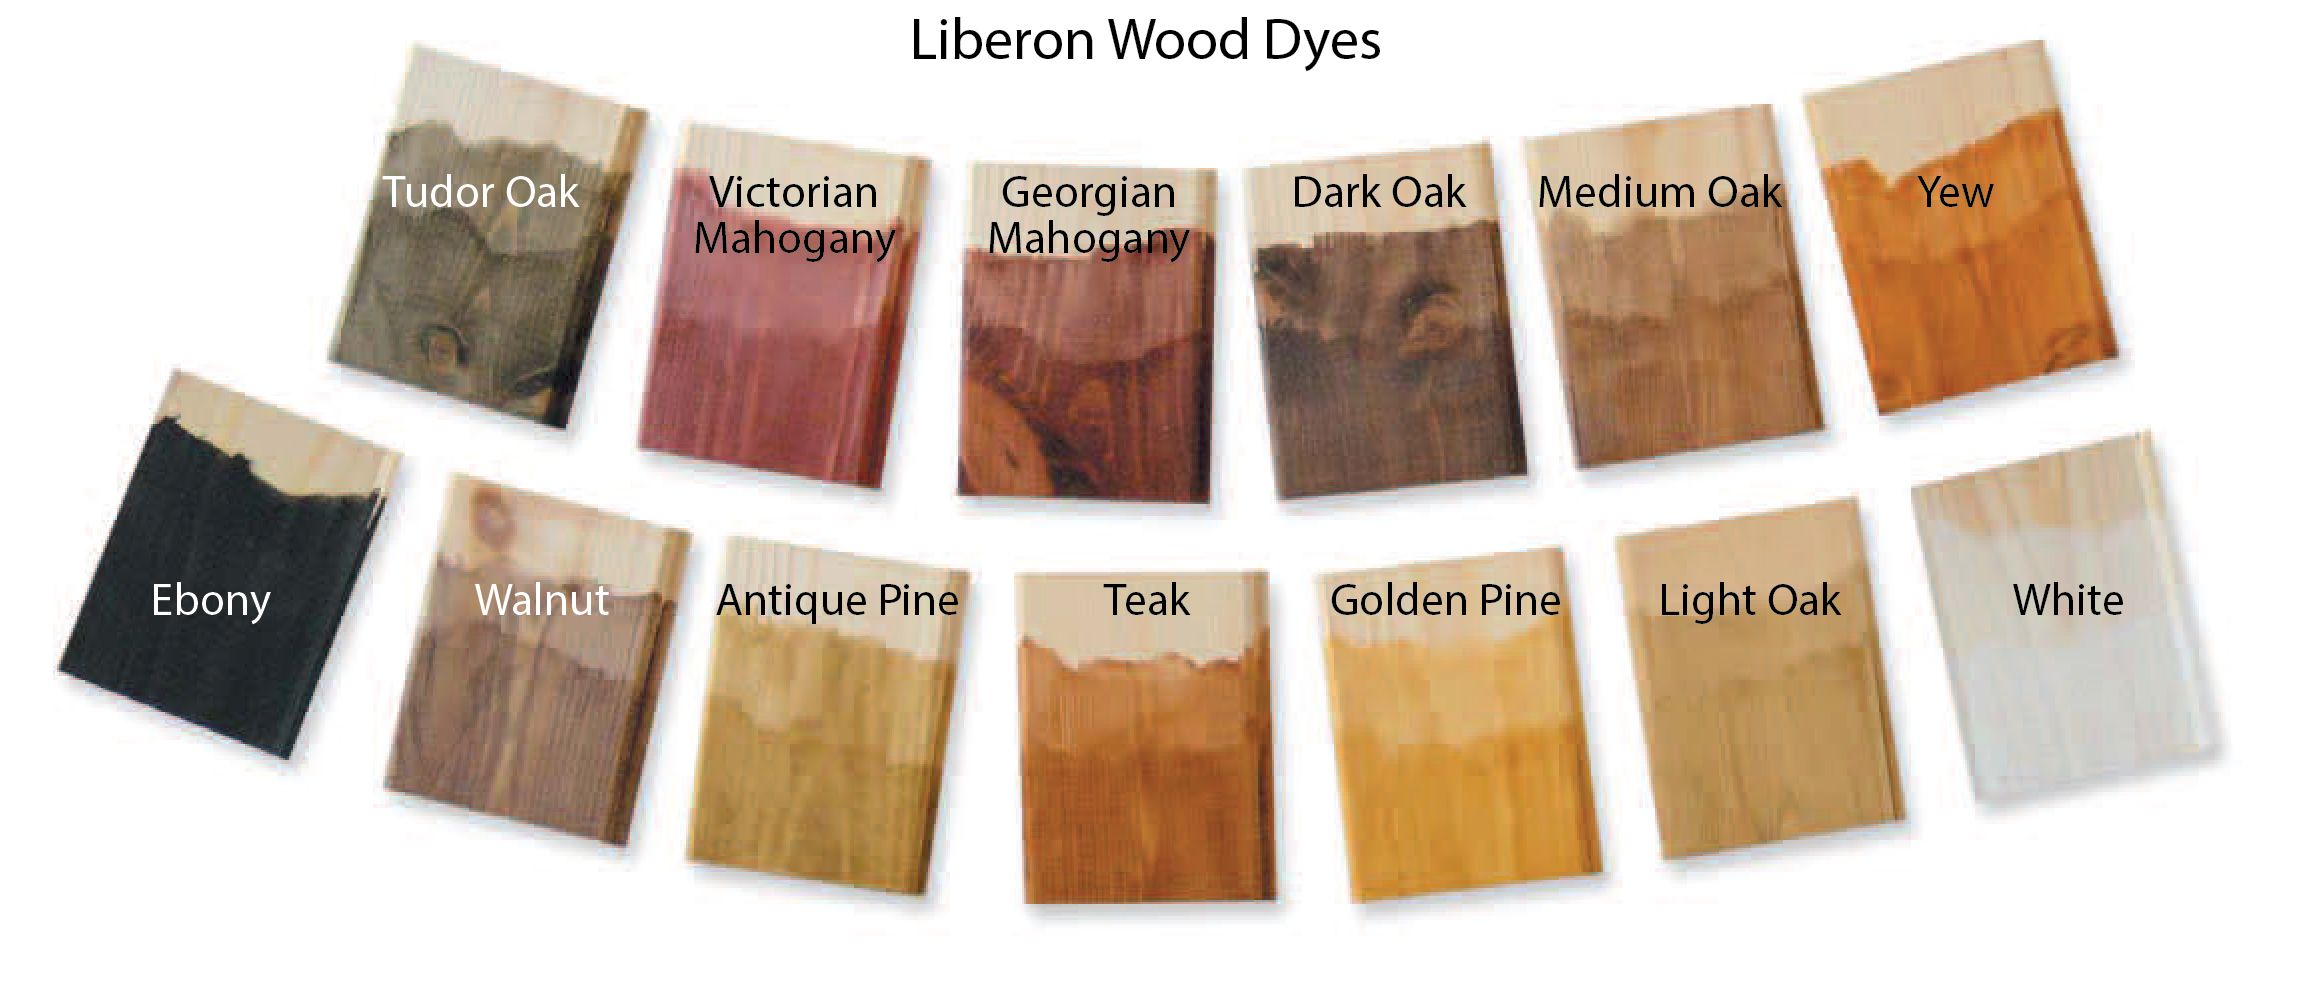 S G Bailey Paints Ltd Liberon Wood Dye Colours: wood colour paint